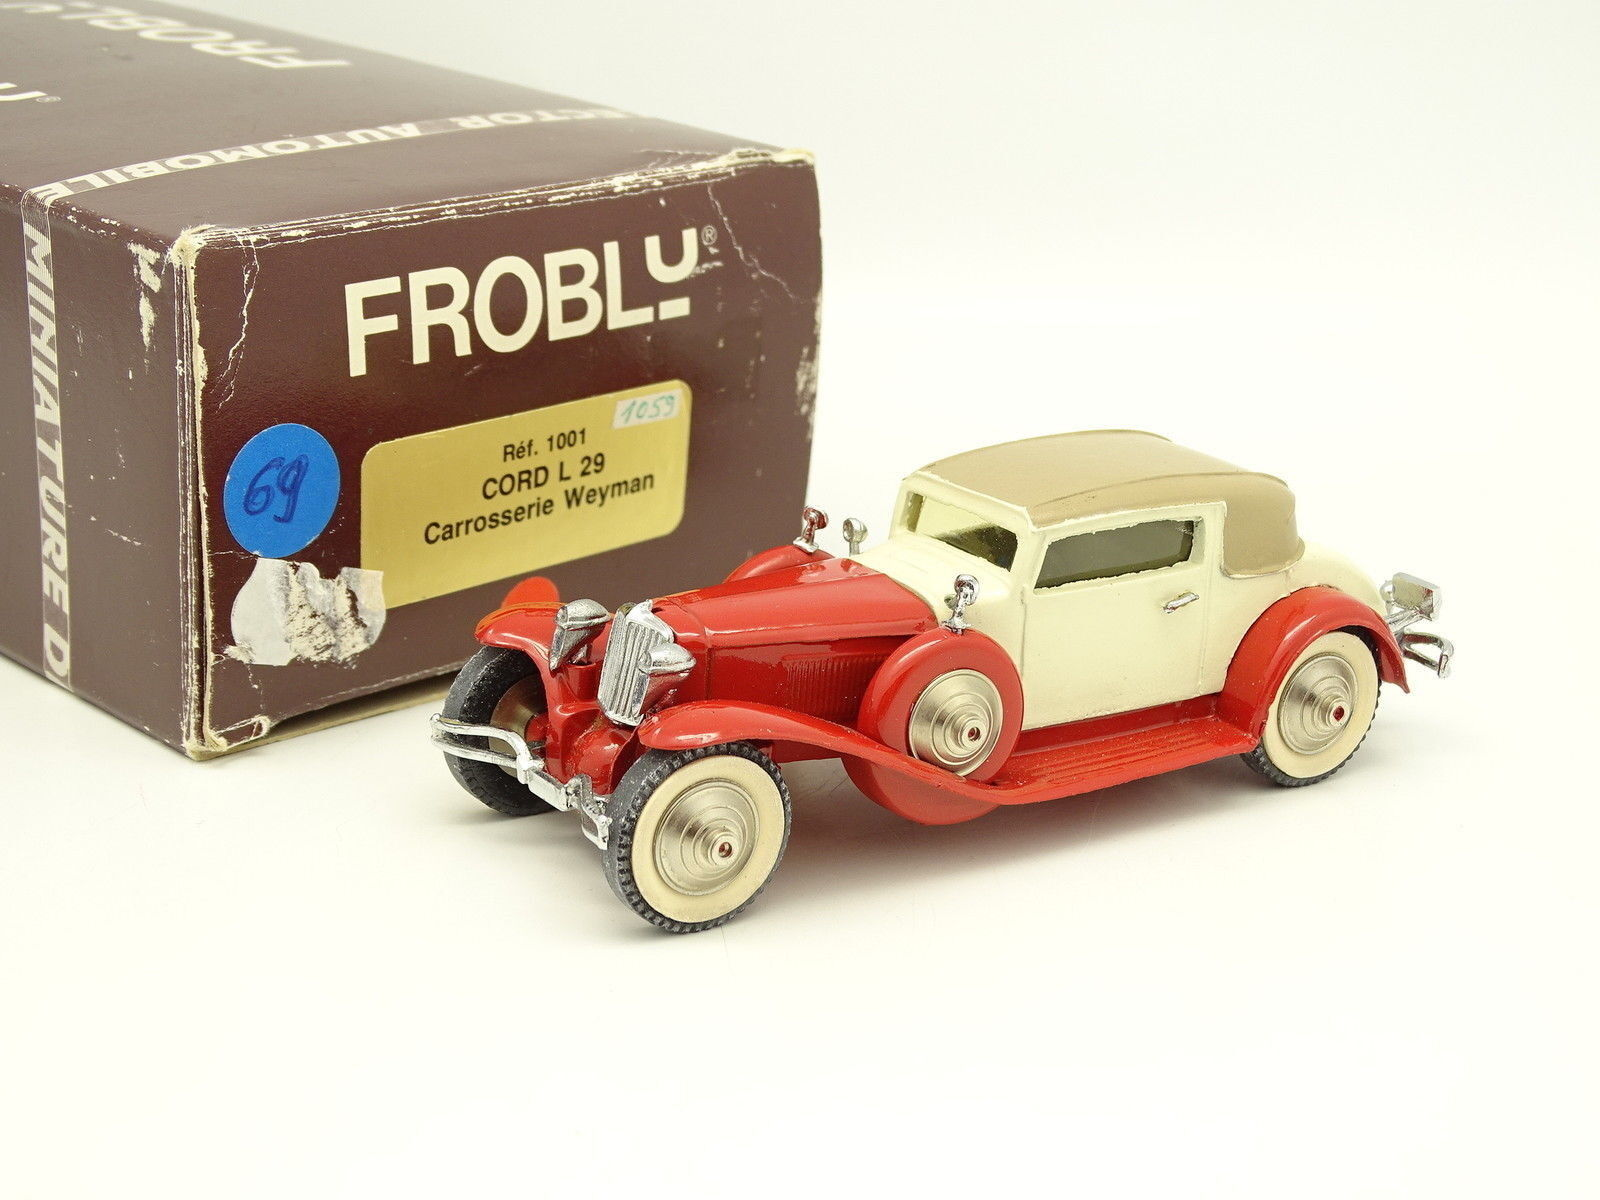 Frobly Modelle 1 43 - Kordel L29 Weyman red und white